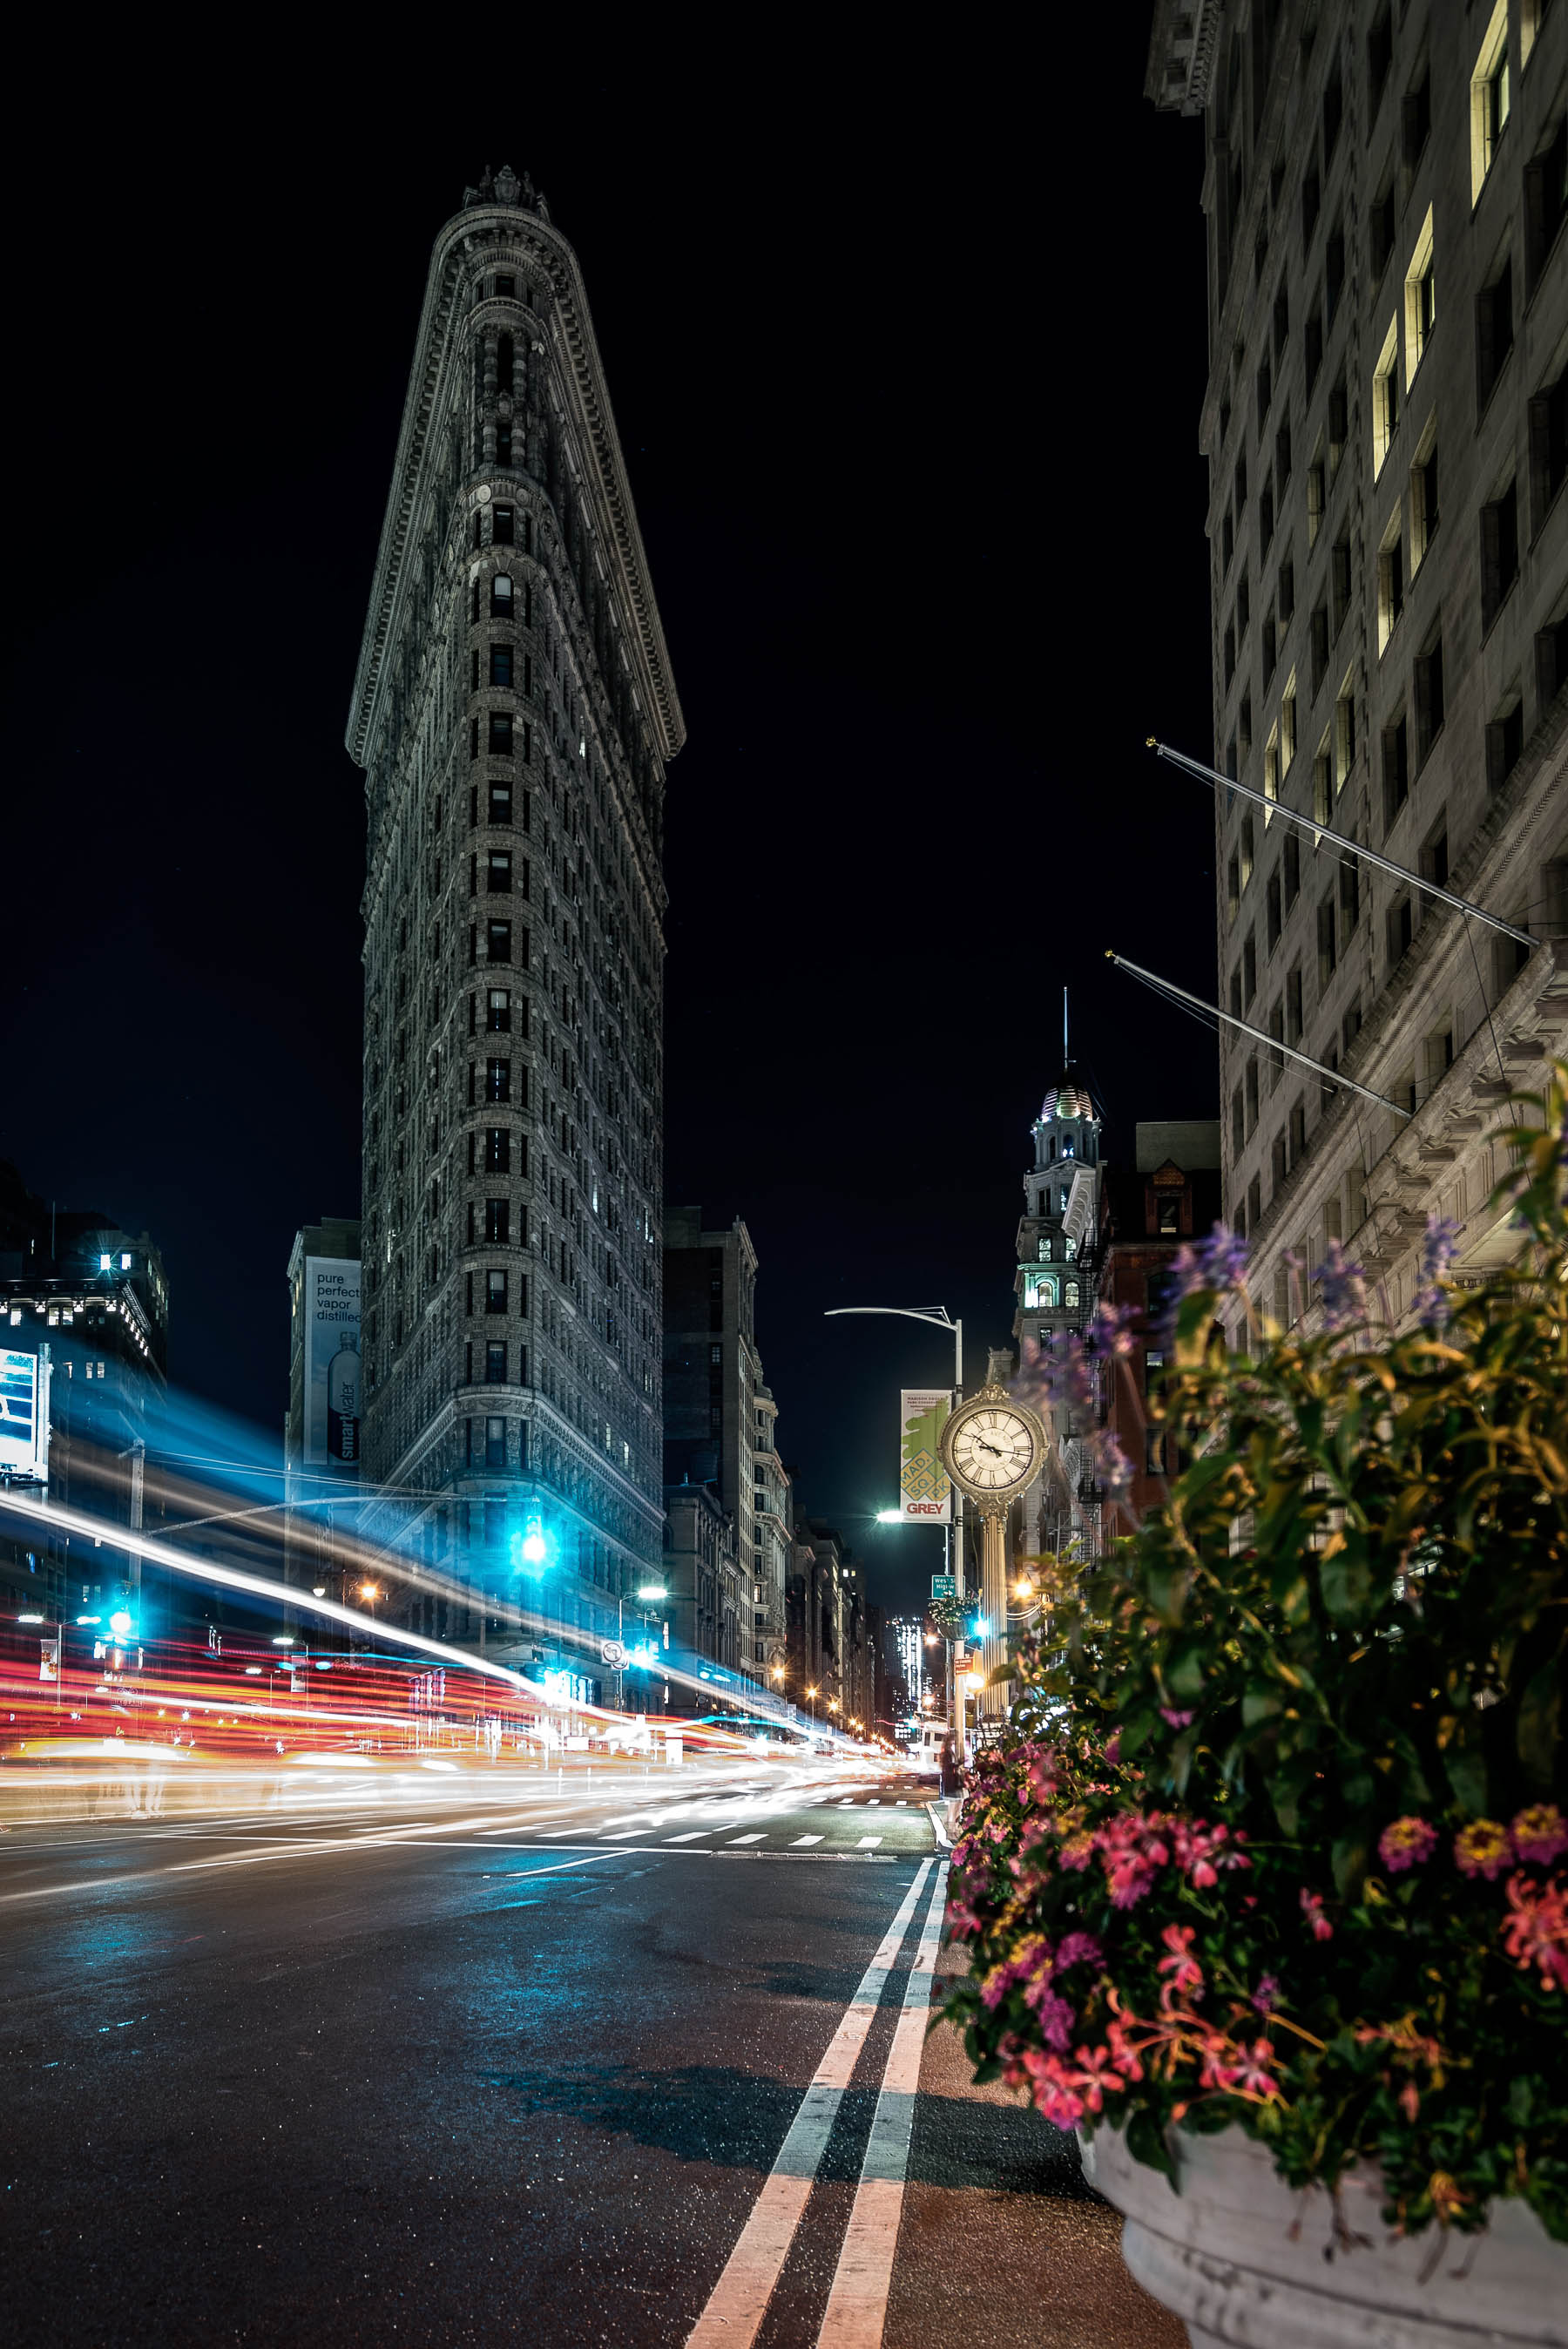 Long exposure photography at Flatiron Building in New York City